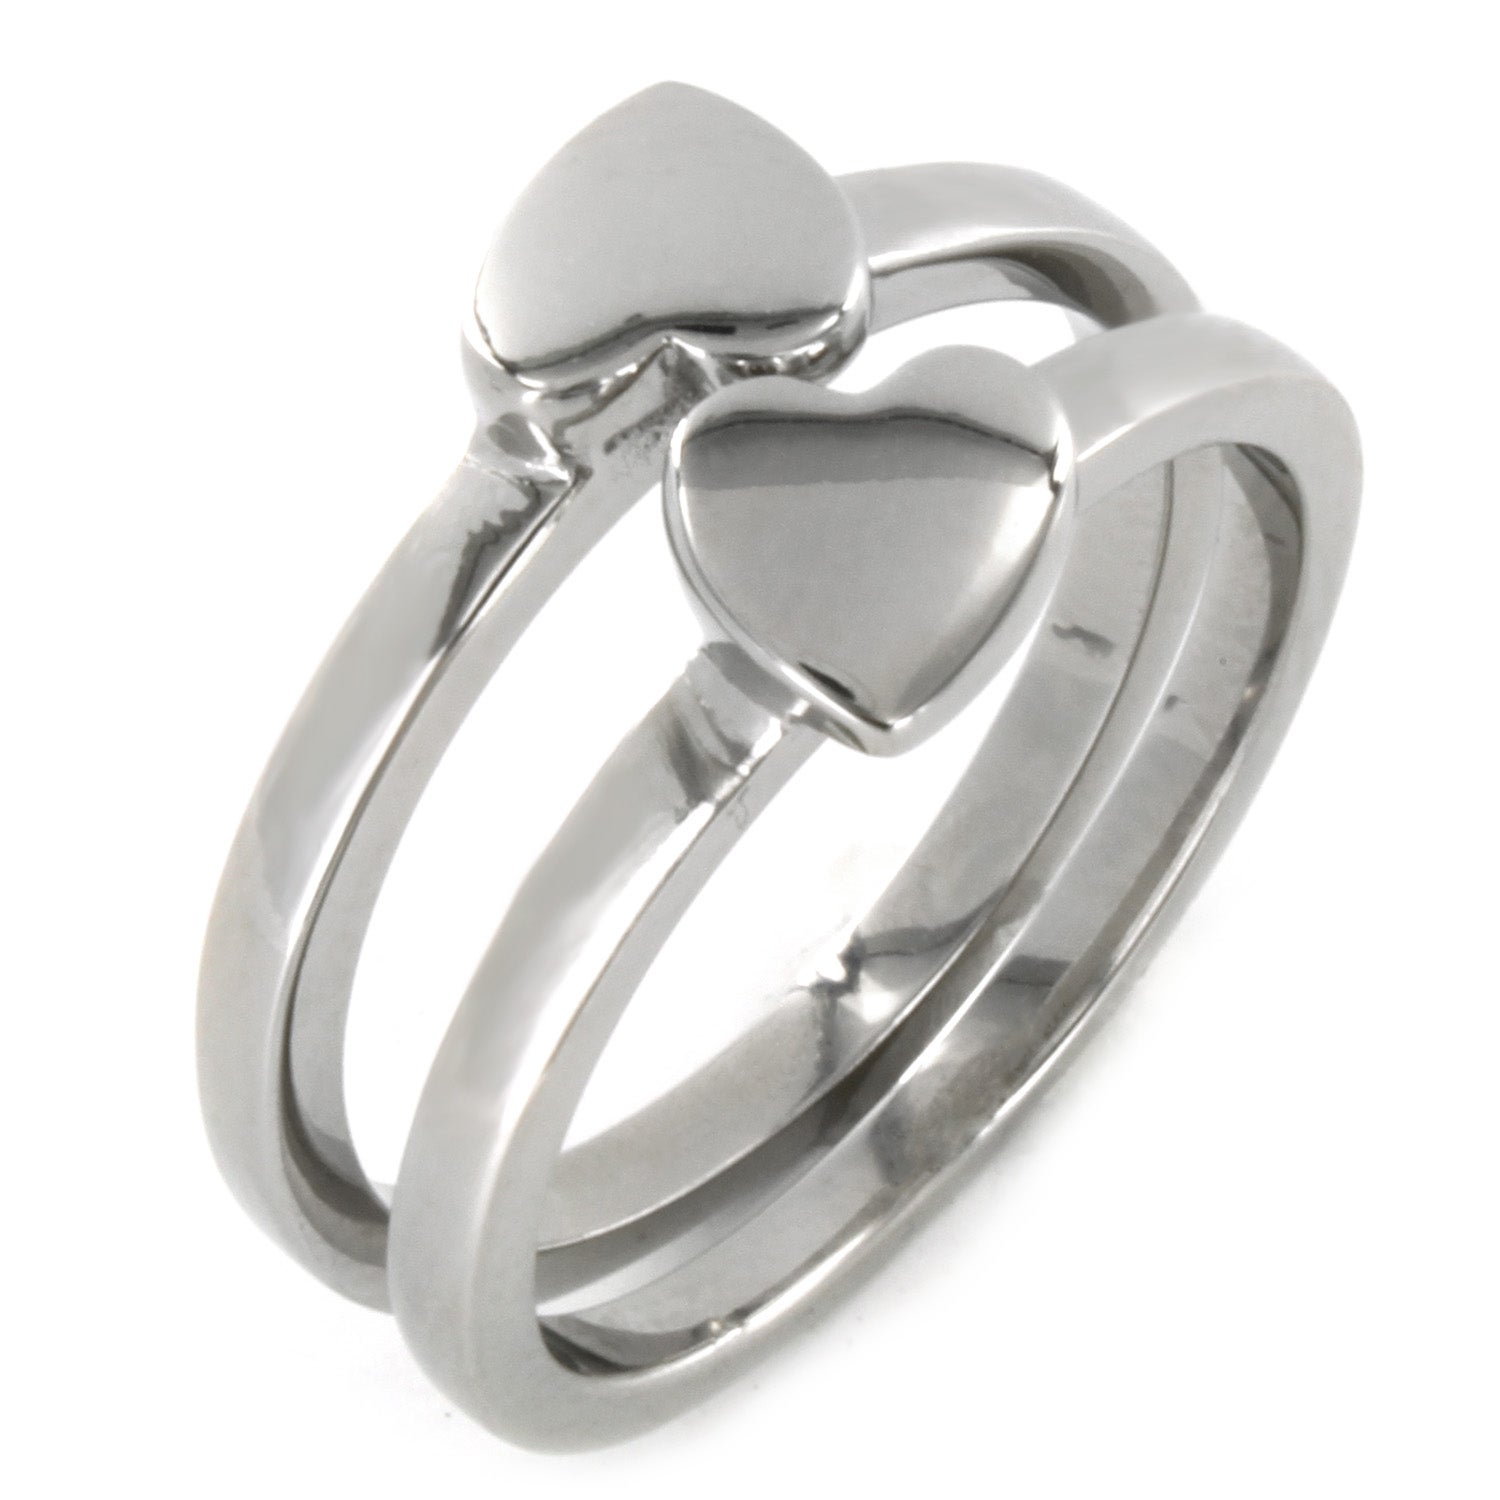 West Coast Jewelry Stainless Steel 'Best Friend' Heart 2-piece Ring Set